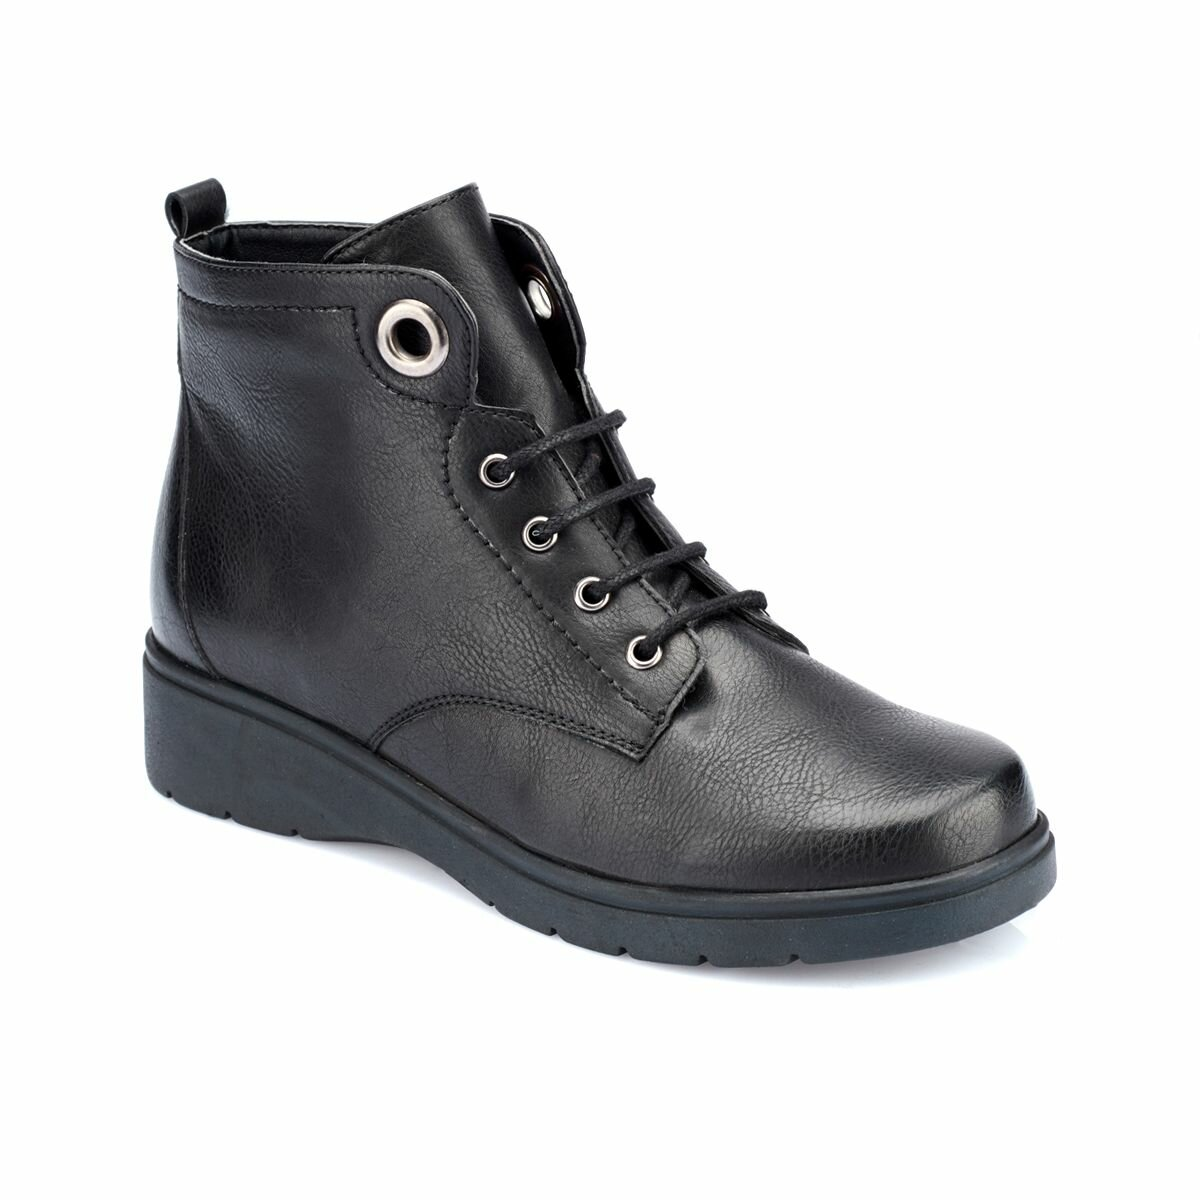 FLO 82.150385.Z Black Women Boots Polaris